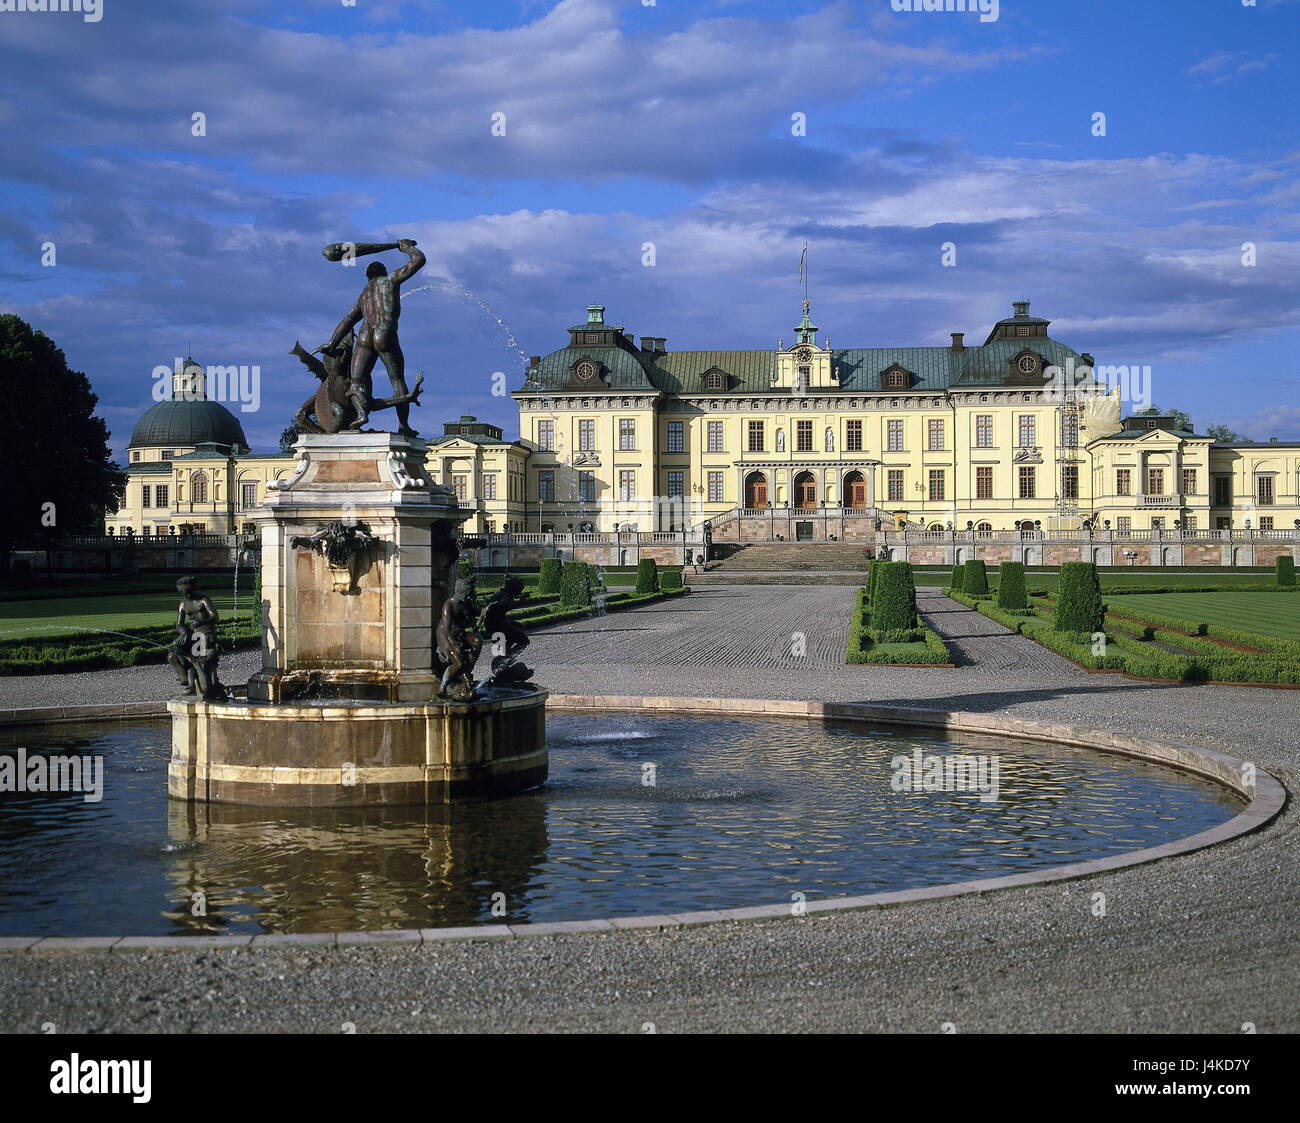 drottningholm castle stockfotos drottningholm castle bilder alamy. Black Bedroom Furniture Sets. Home Design Ideas